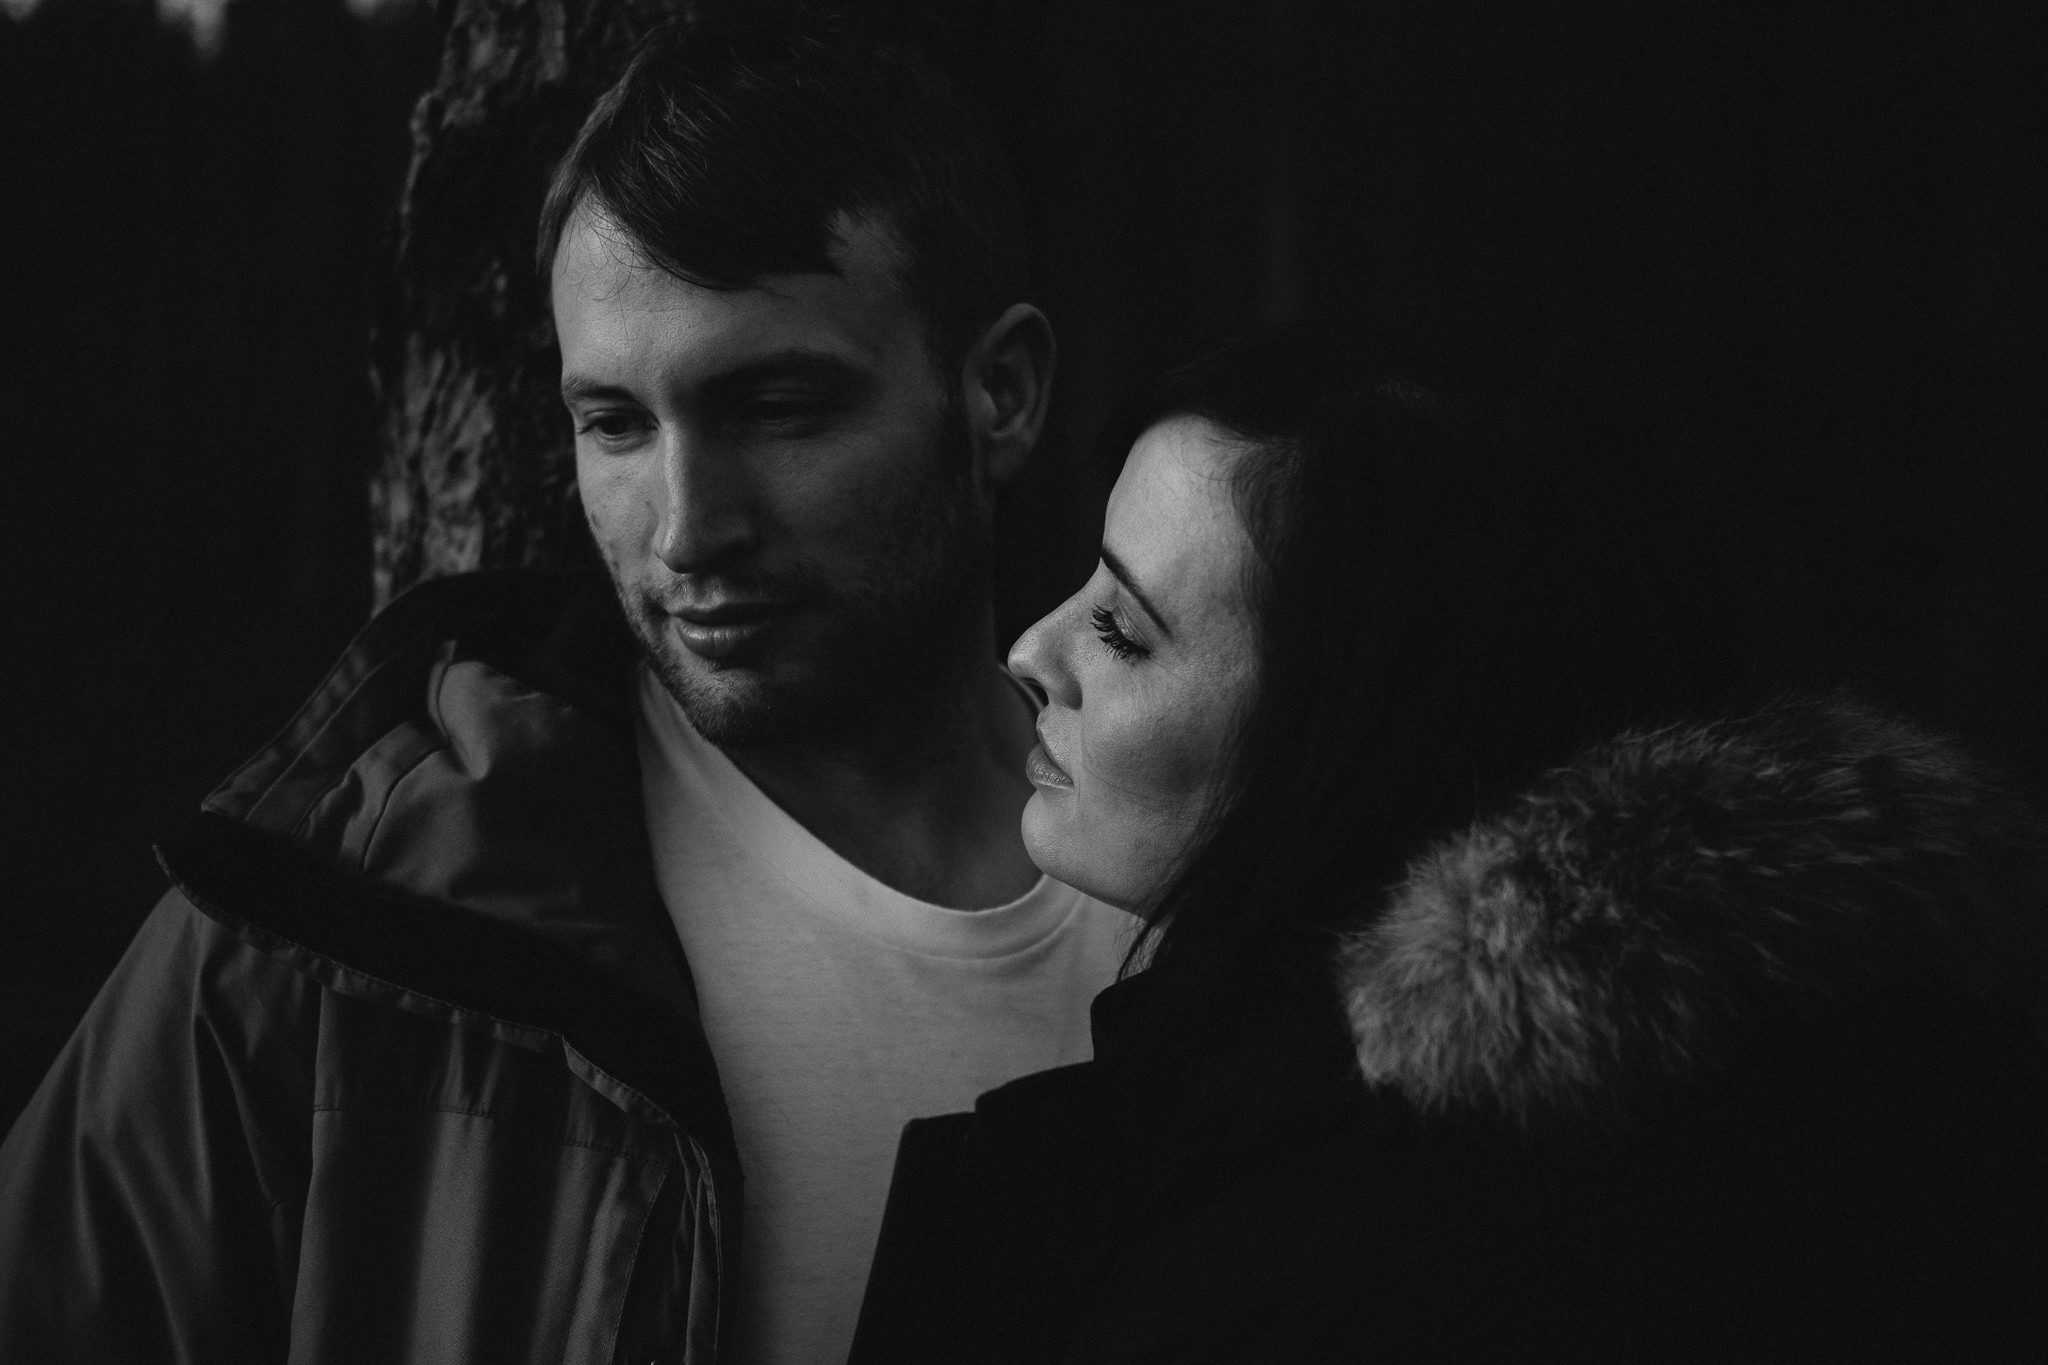 Black and white photo of the couple embracing on a pre-wedding shoot